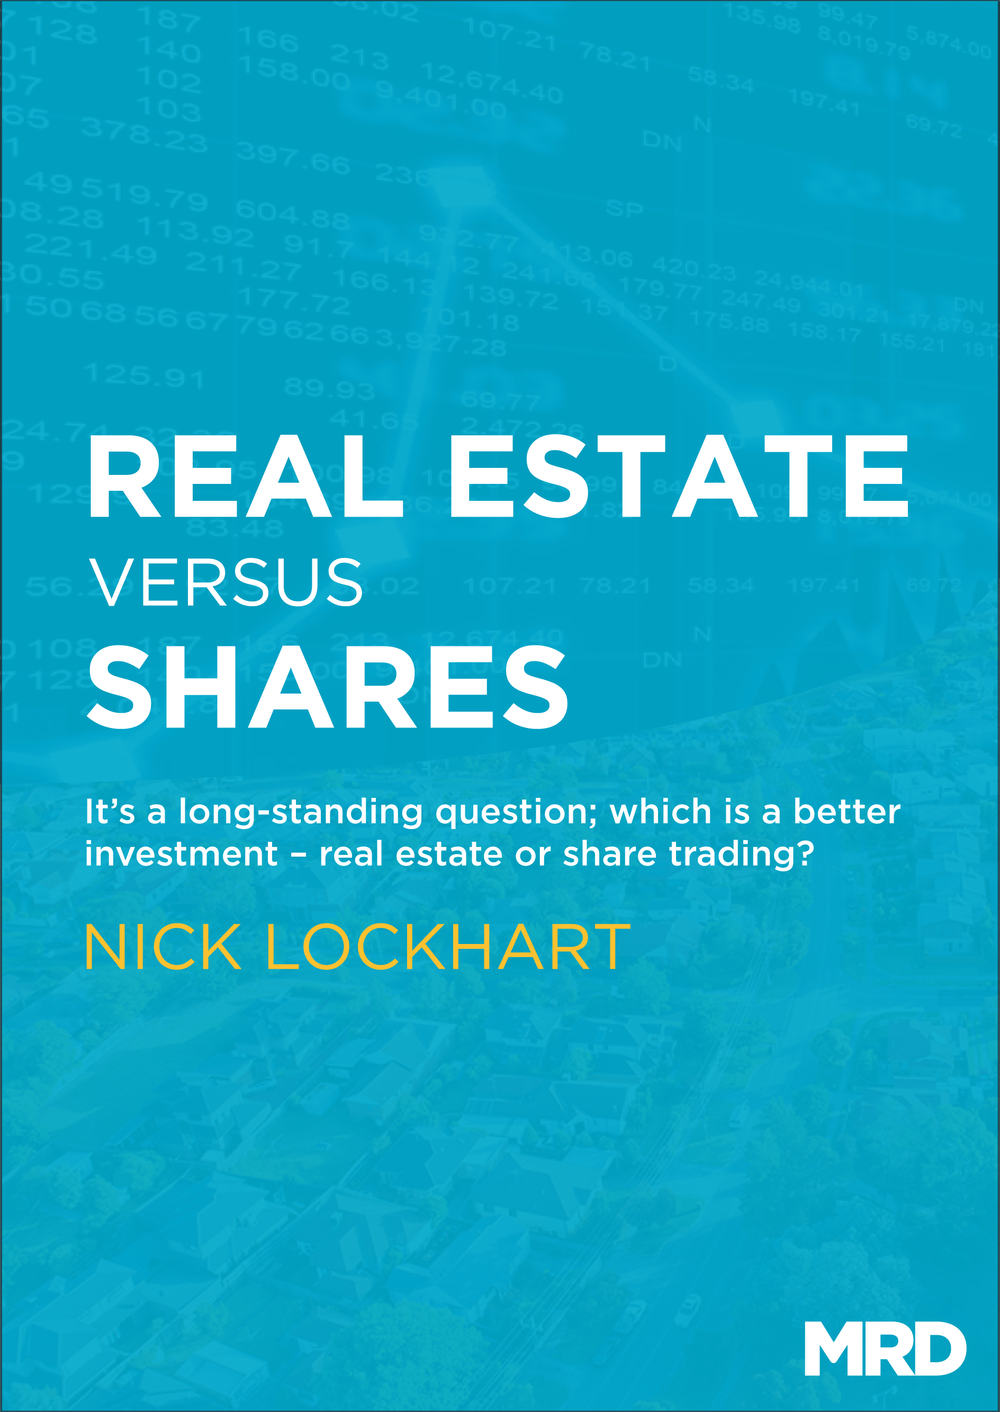 Real Estate Versus Shares eBook Cover-01.png